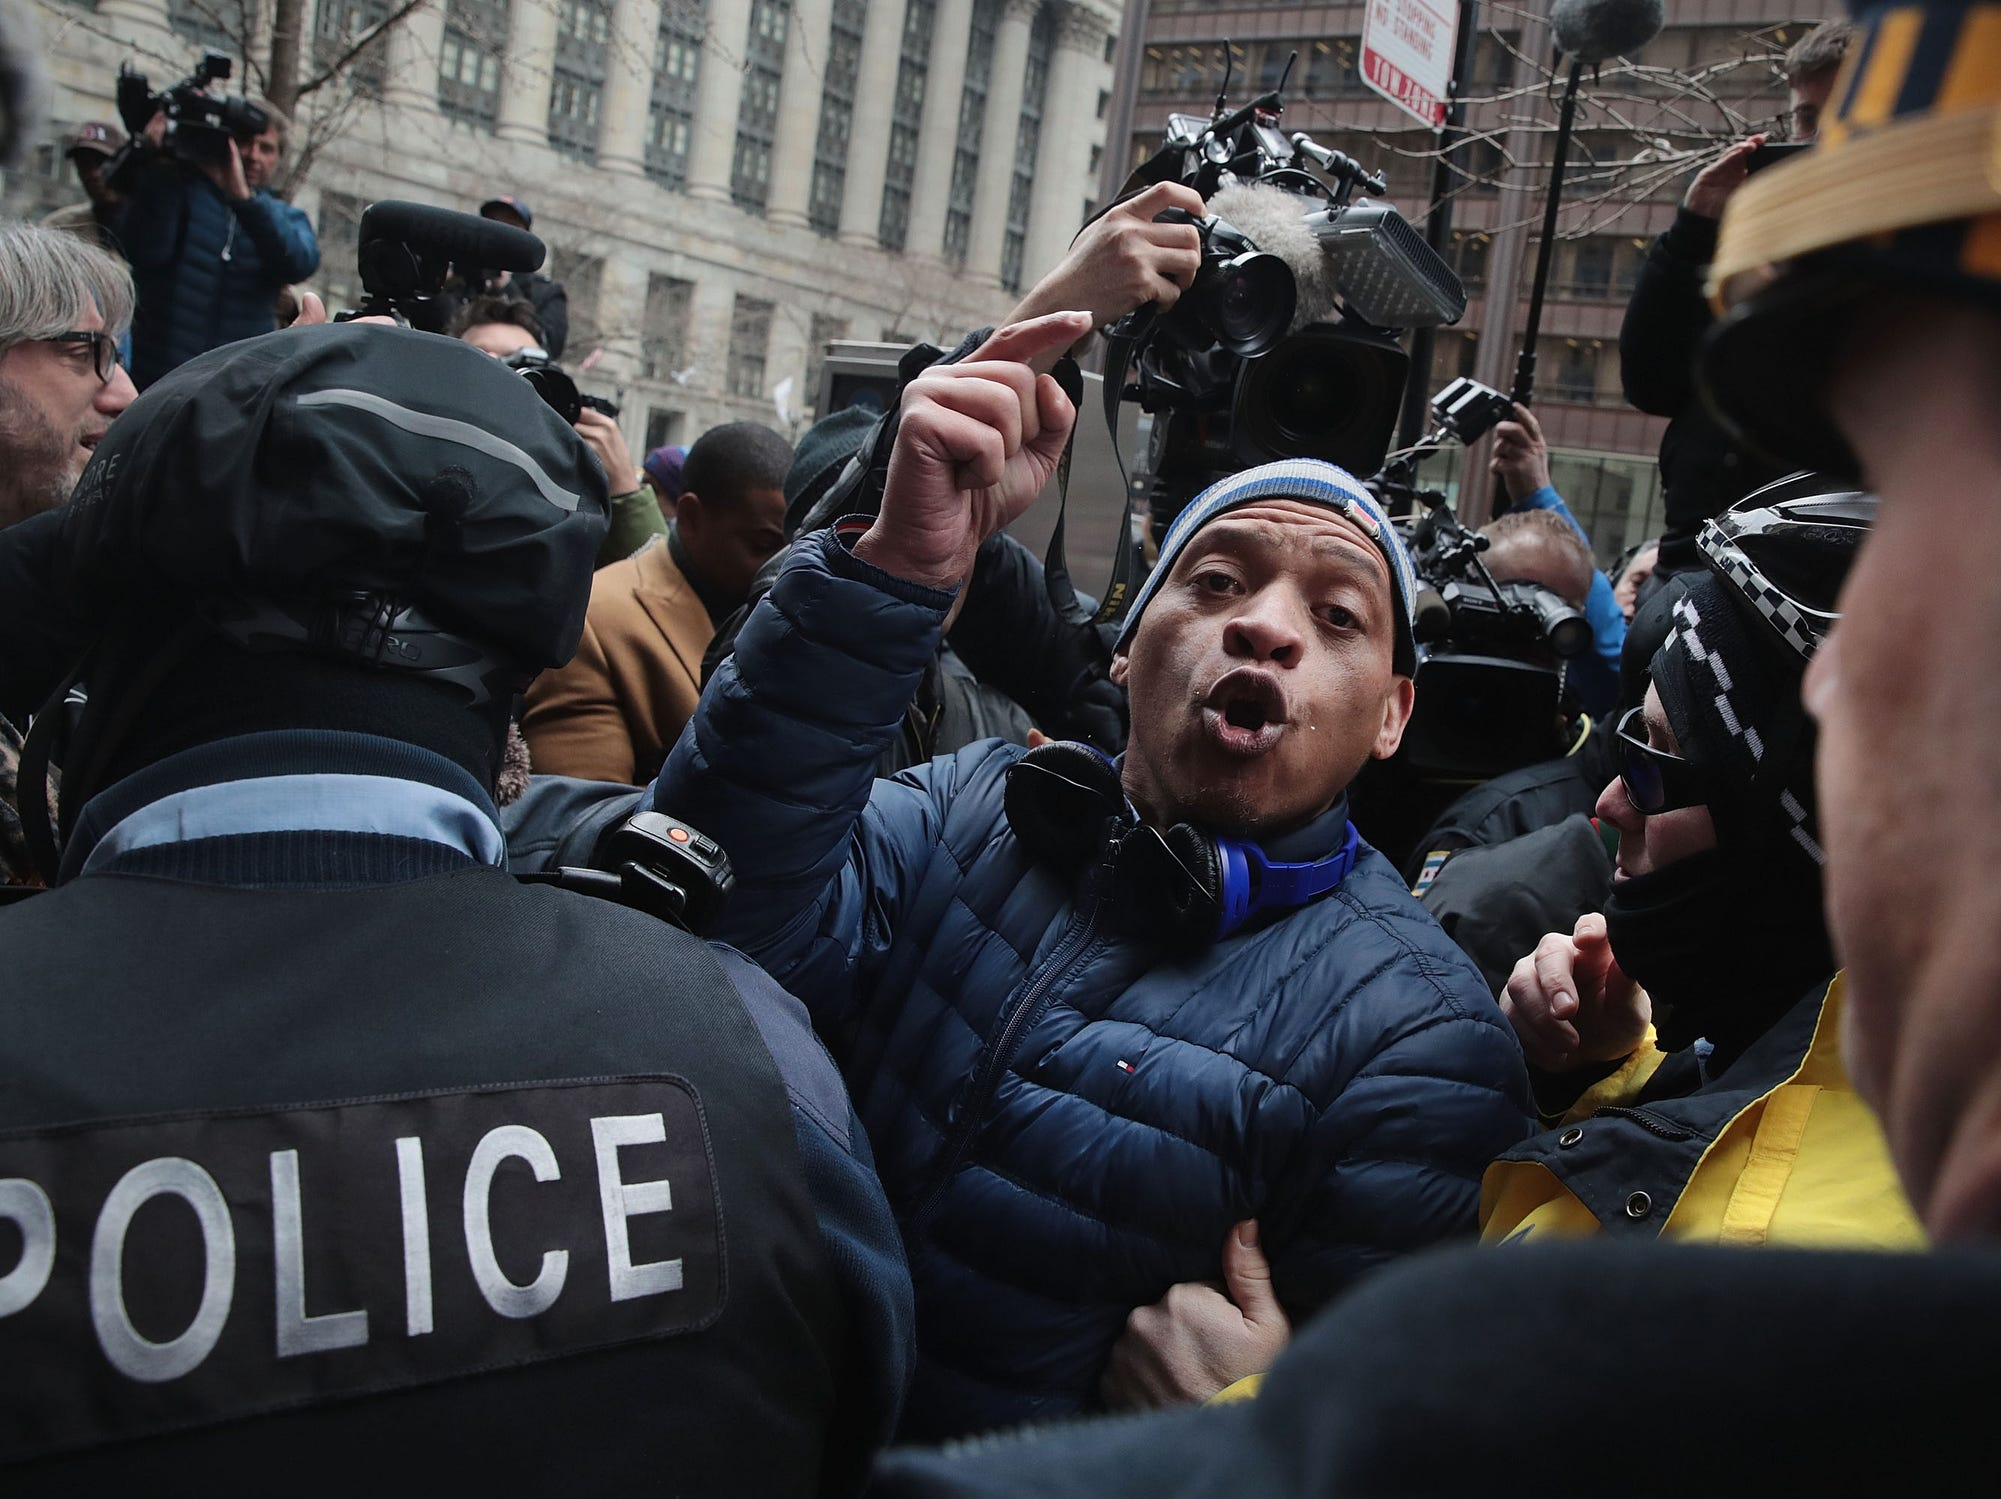 Supporters of Cook County State's Attorney Kim Foxx argue with protestors during a demonstration organized by the Fraternal Order of Police to call for Foxx's removal on April 01, 2019 in Chicago.